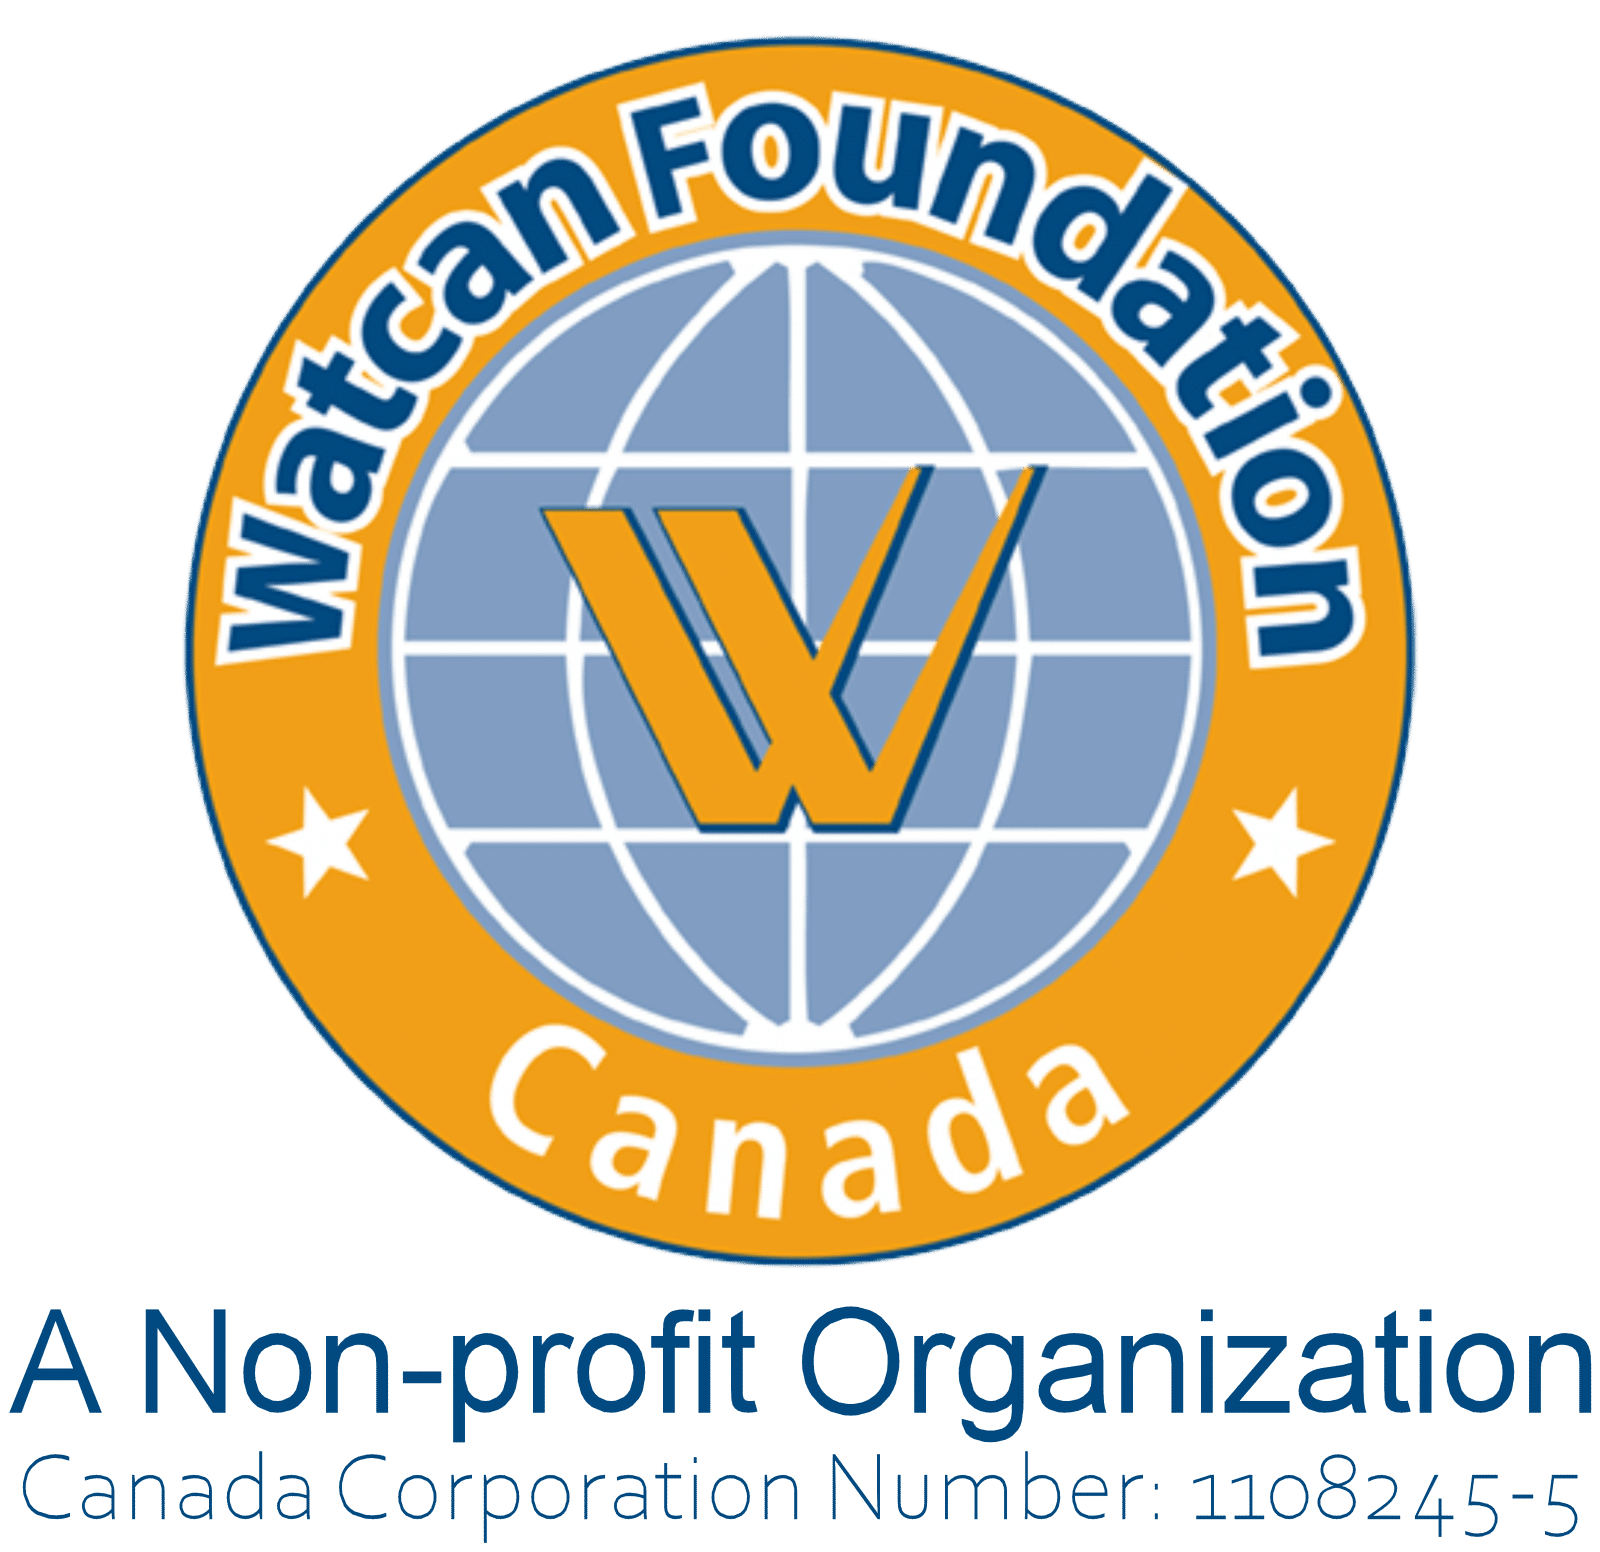 Watcan Foundation